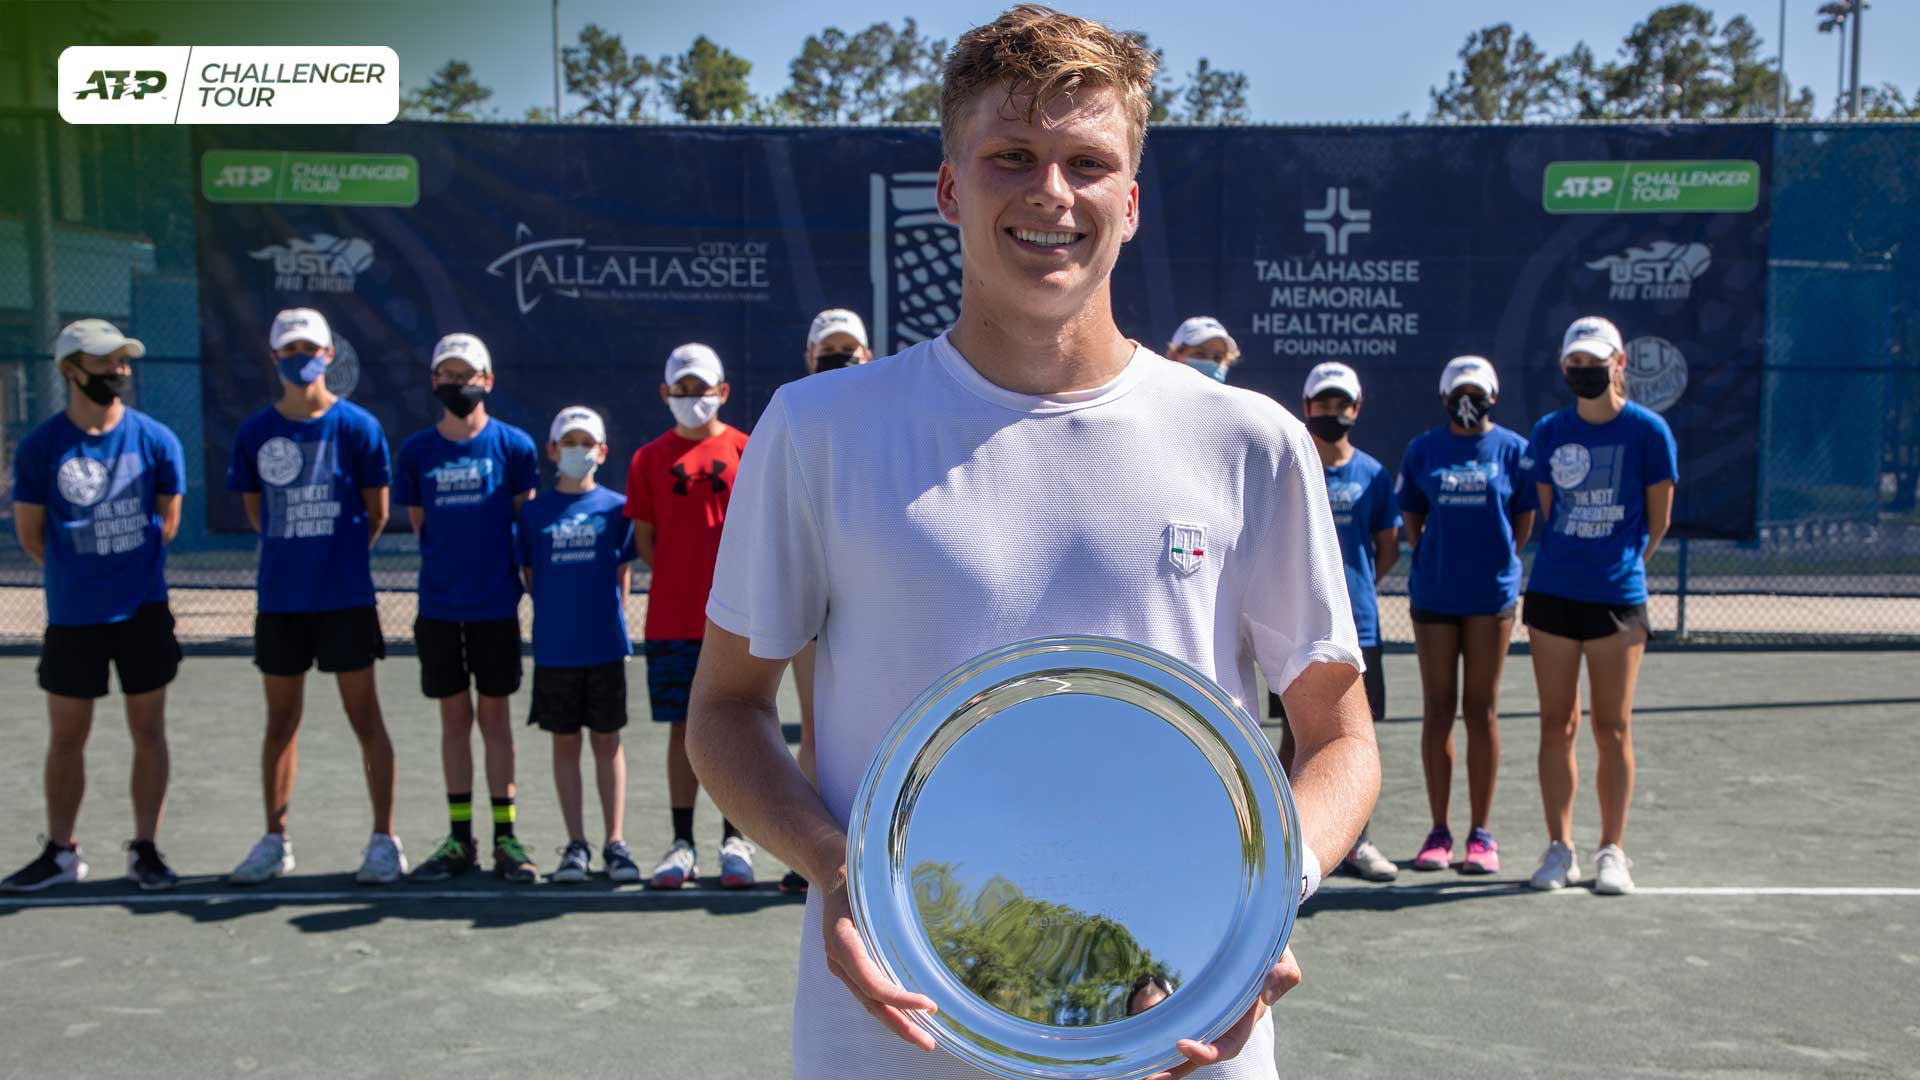 https://www.atptour.com/-/media/images/news/2021/04/26/04/06/tallahassee-2021-brooksby.jpg